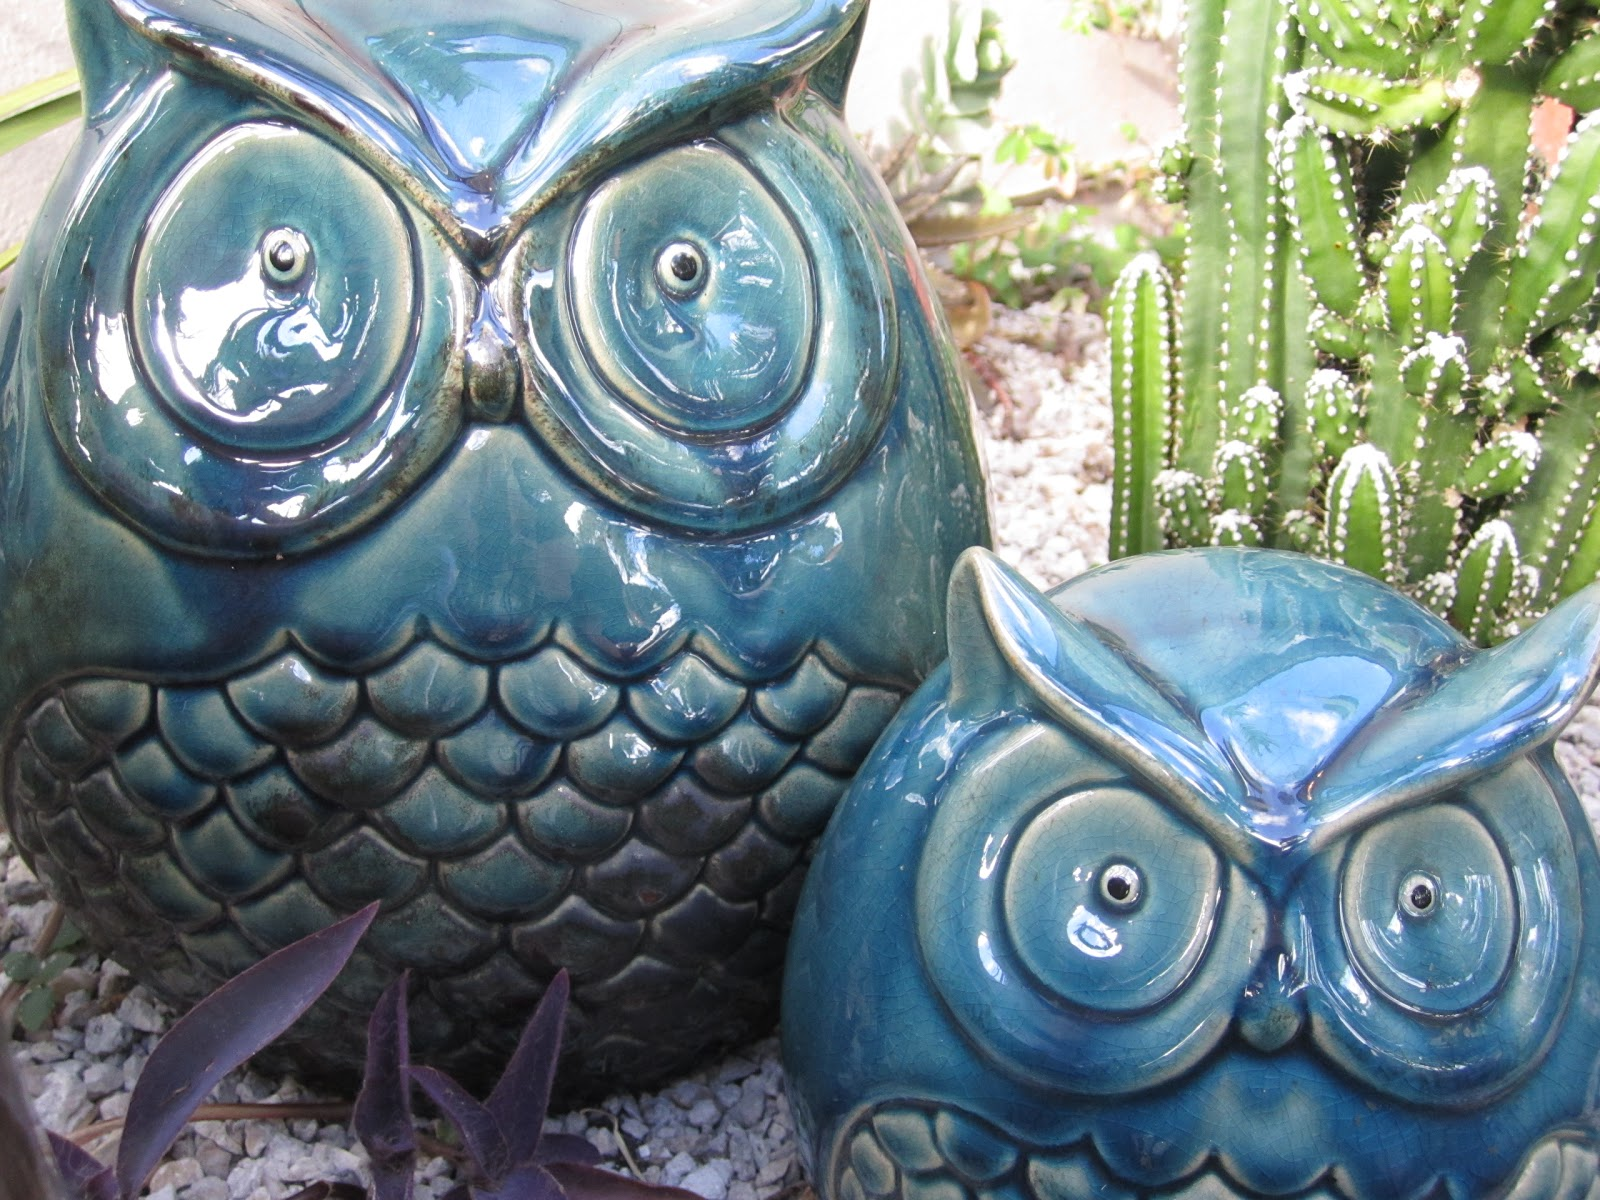 Inspire Bohemia Succulents Cacti and Owls in the Garden